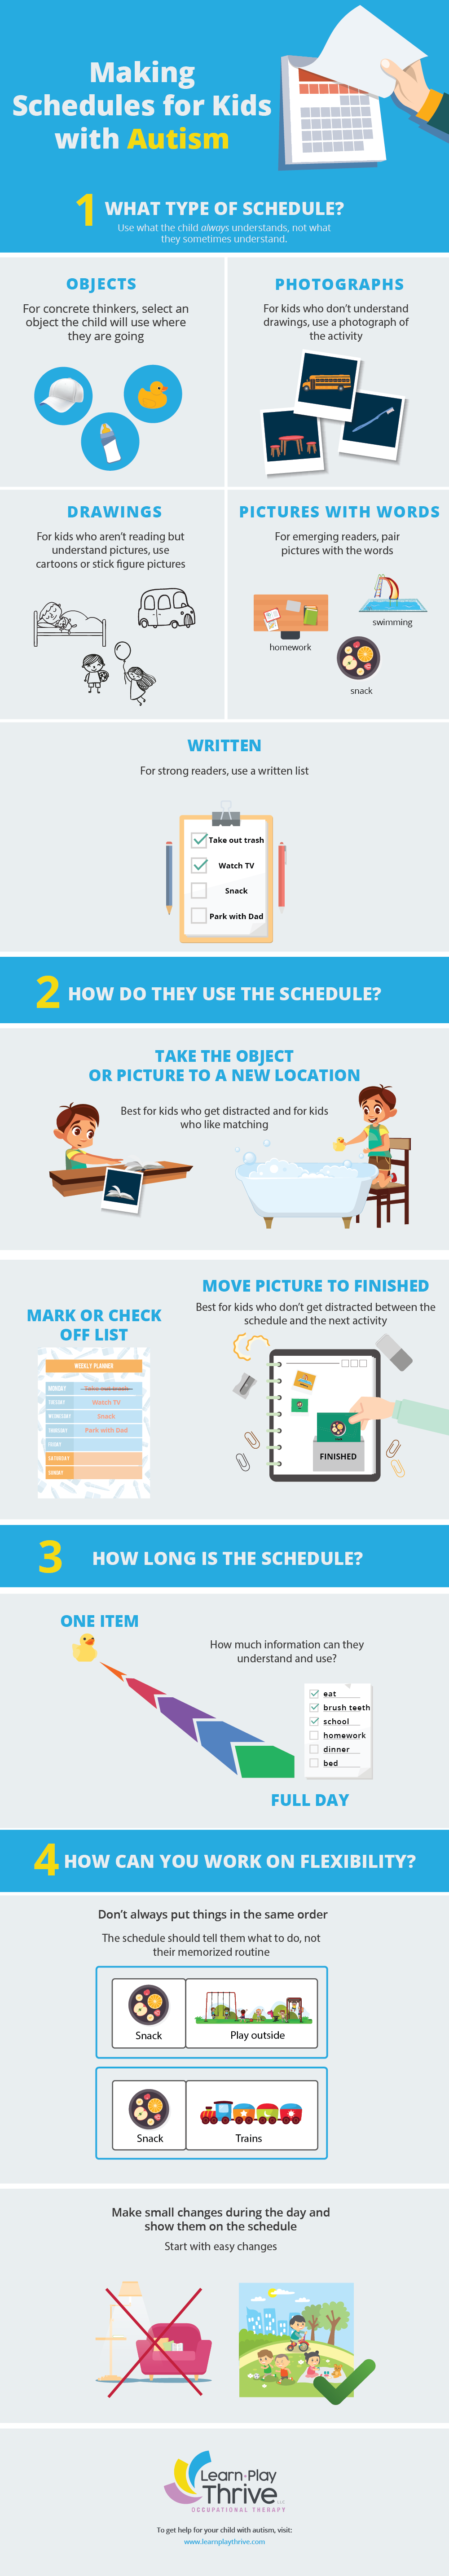 Making schedules for kids with autism infographic